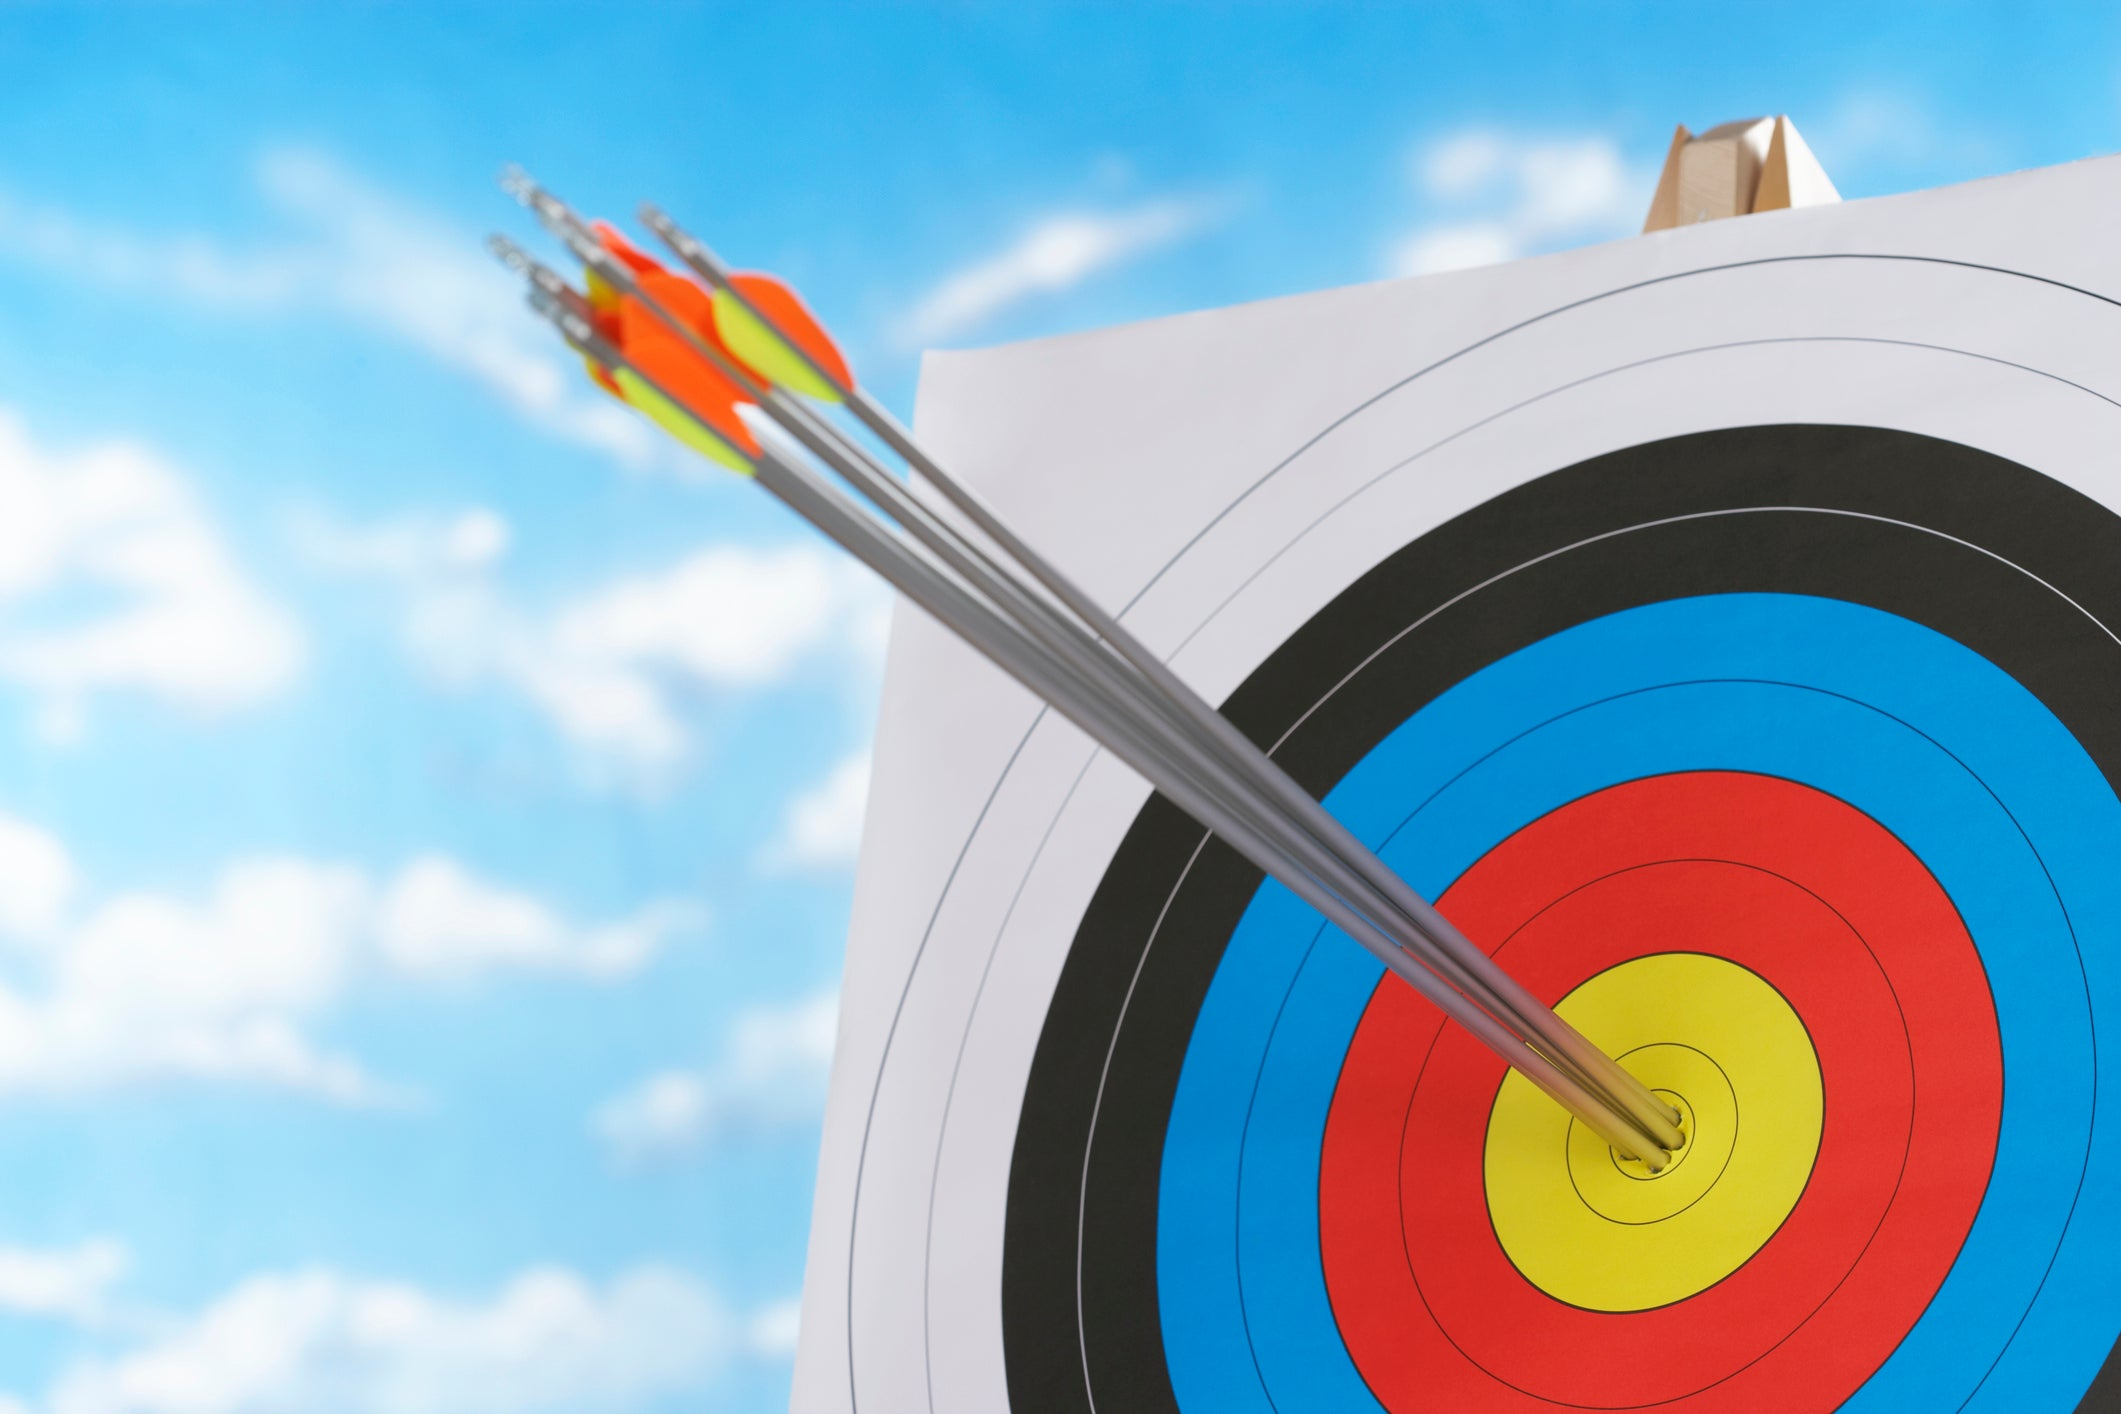 Best Fidelity Mutual Funds For 2020 The 9 Best Fidelity Target Date Funds | The Motley Fool